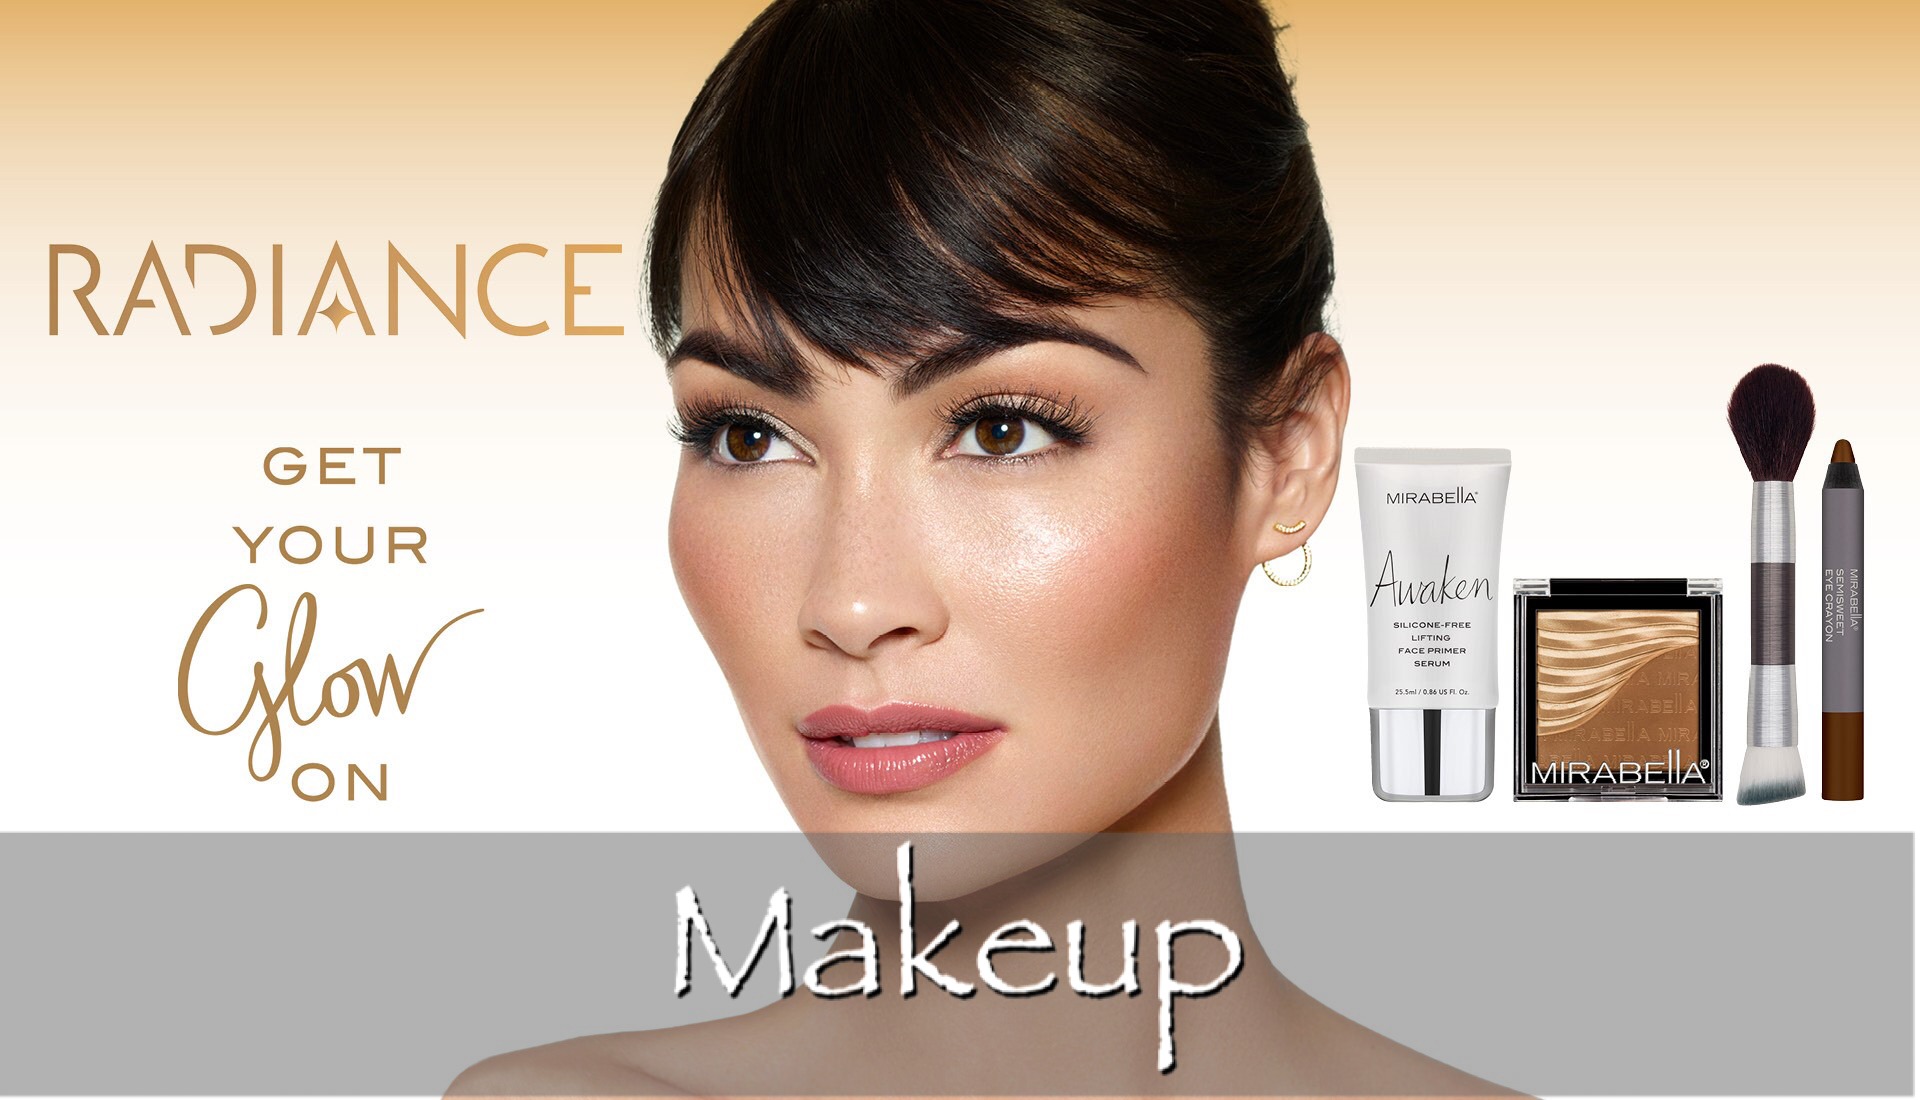 makeup & hair removal - The Mirabella mineral makeup line is infused with vitamins and antioxidants to improve the texture of your skin while wearing makeup. Feels very natural yet long lasting for all day full coverage for your special event. Maintain the perfect brow with our hair removal system from France